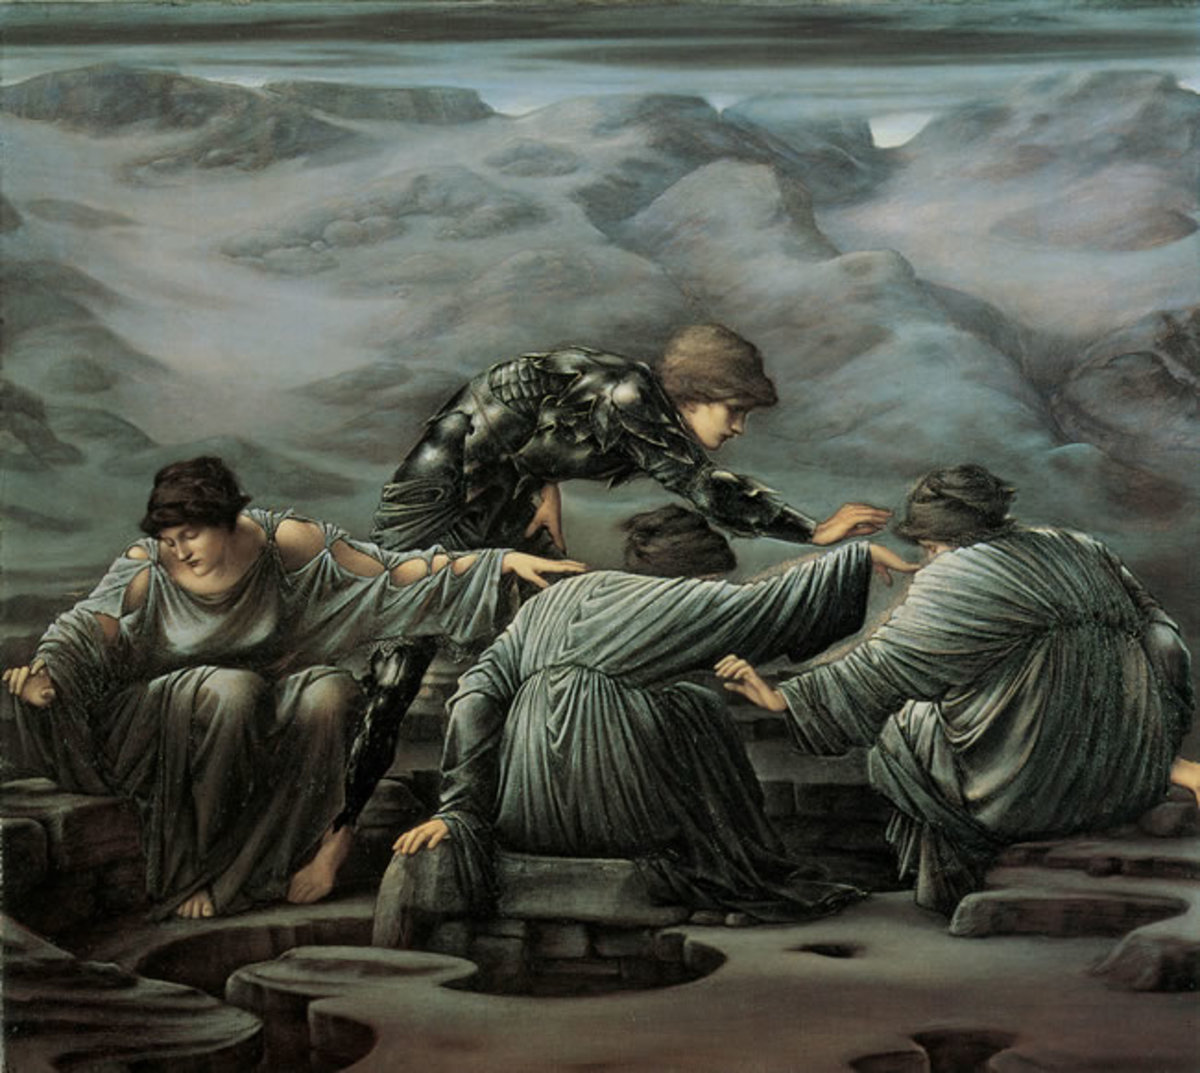 'Perseus and the Graeae' by Edward Burne-Jones, 1882. In this evocative picture, the artist has chosen to present the Graeae as young and beautiful rather than the withered old women of tradition.